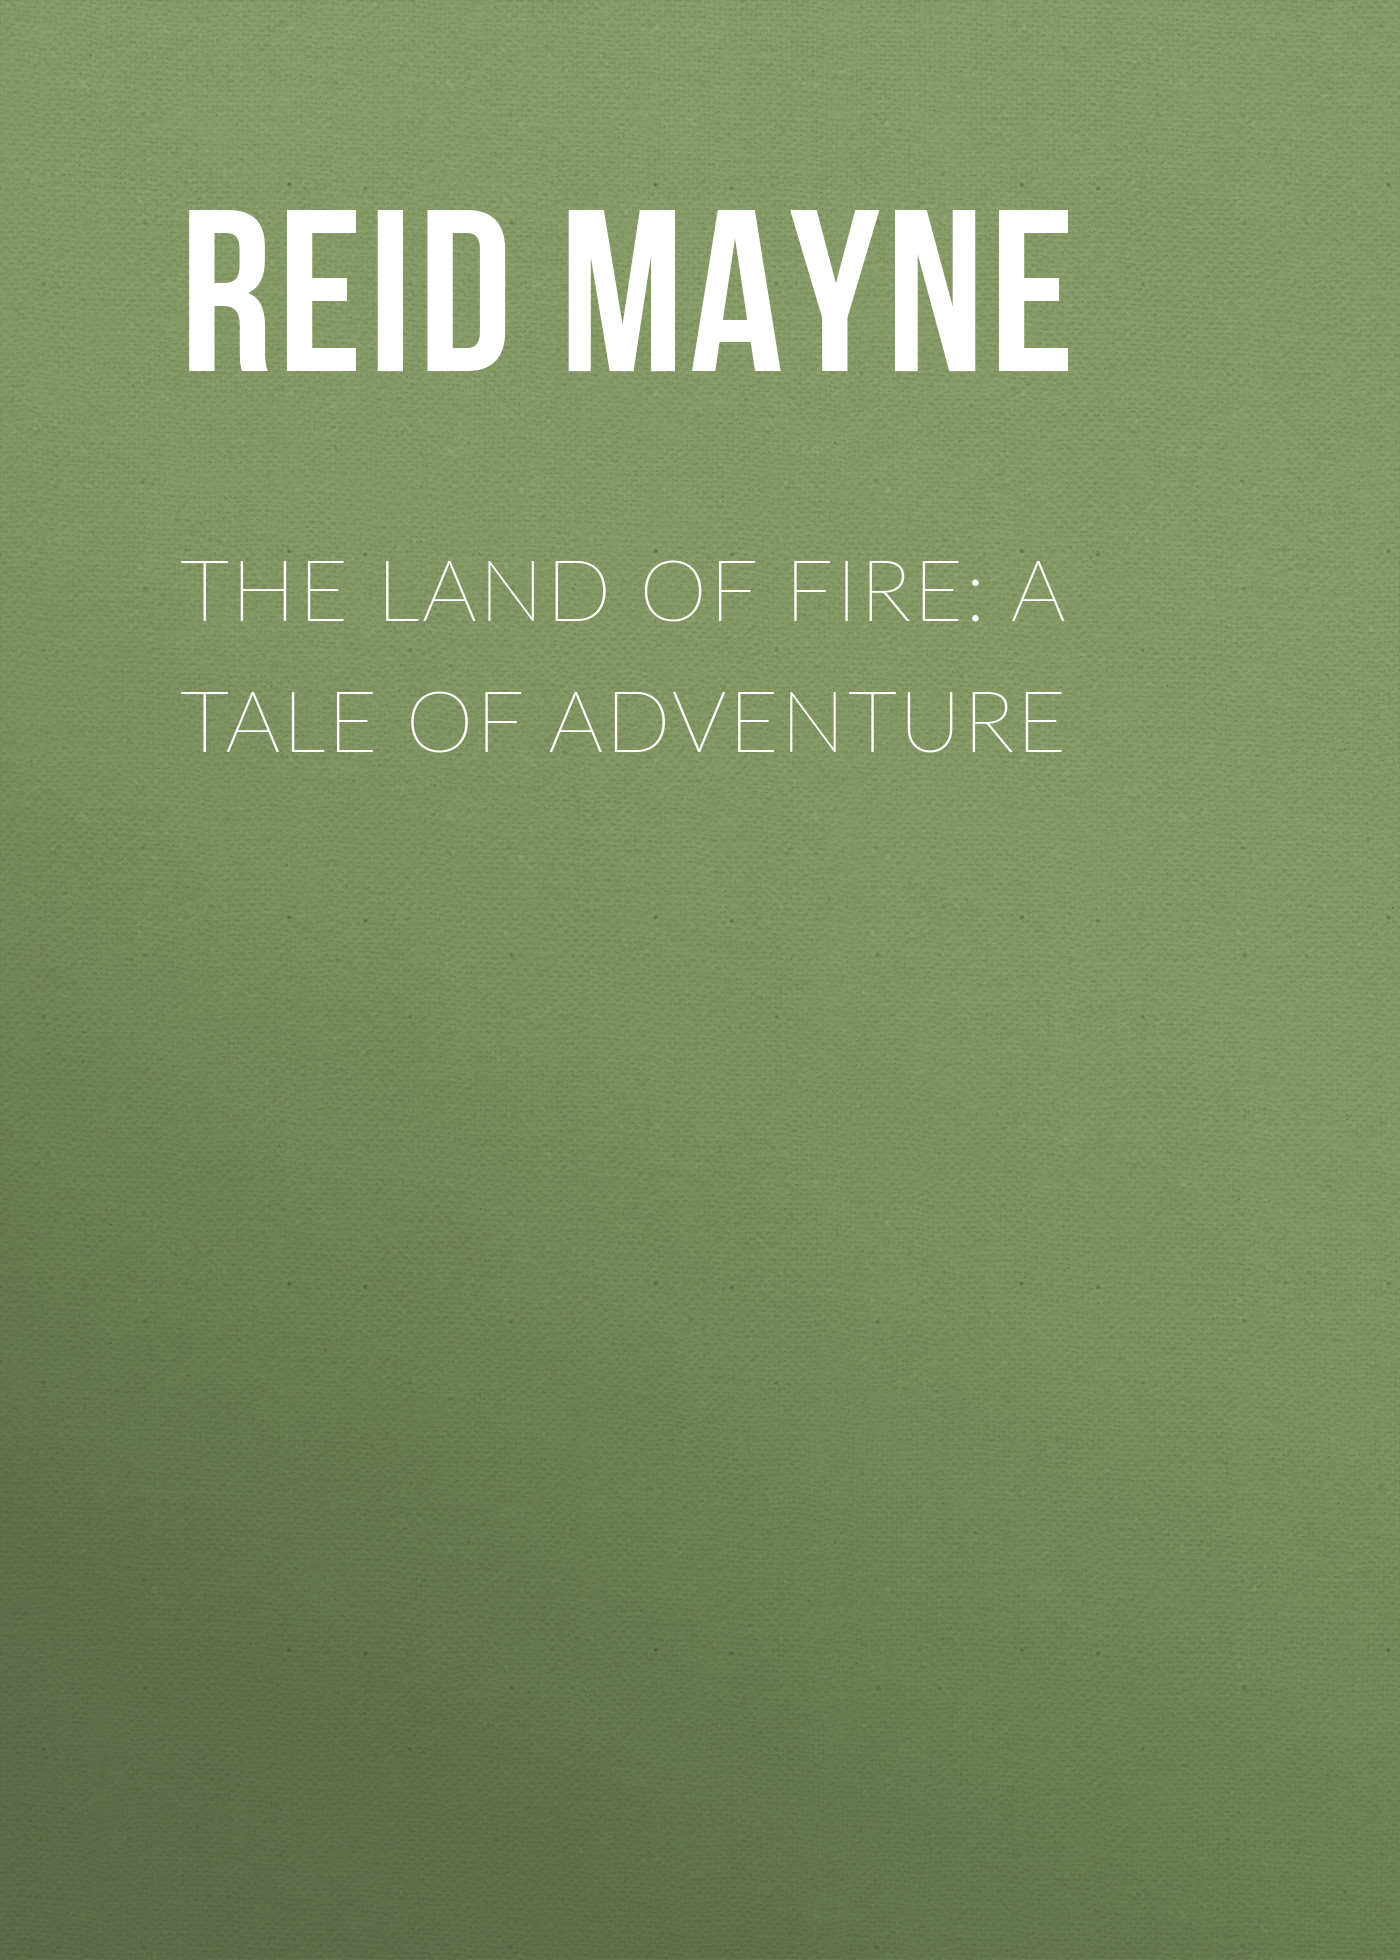 Майн Рид The Land of Fire: A Tale of Adventure land of savagery land of promise – the european image of the american